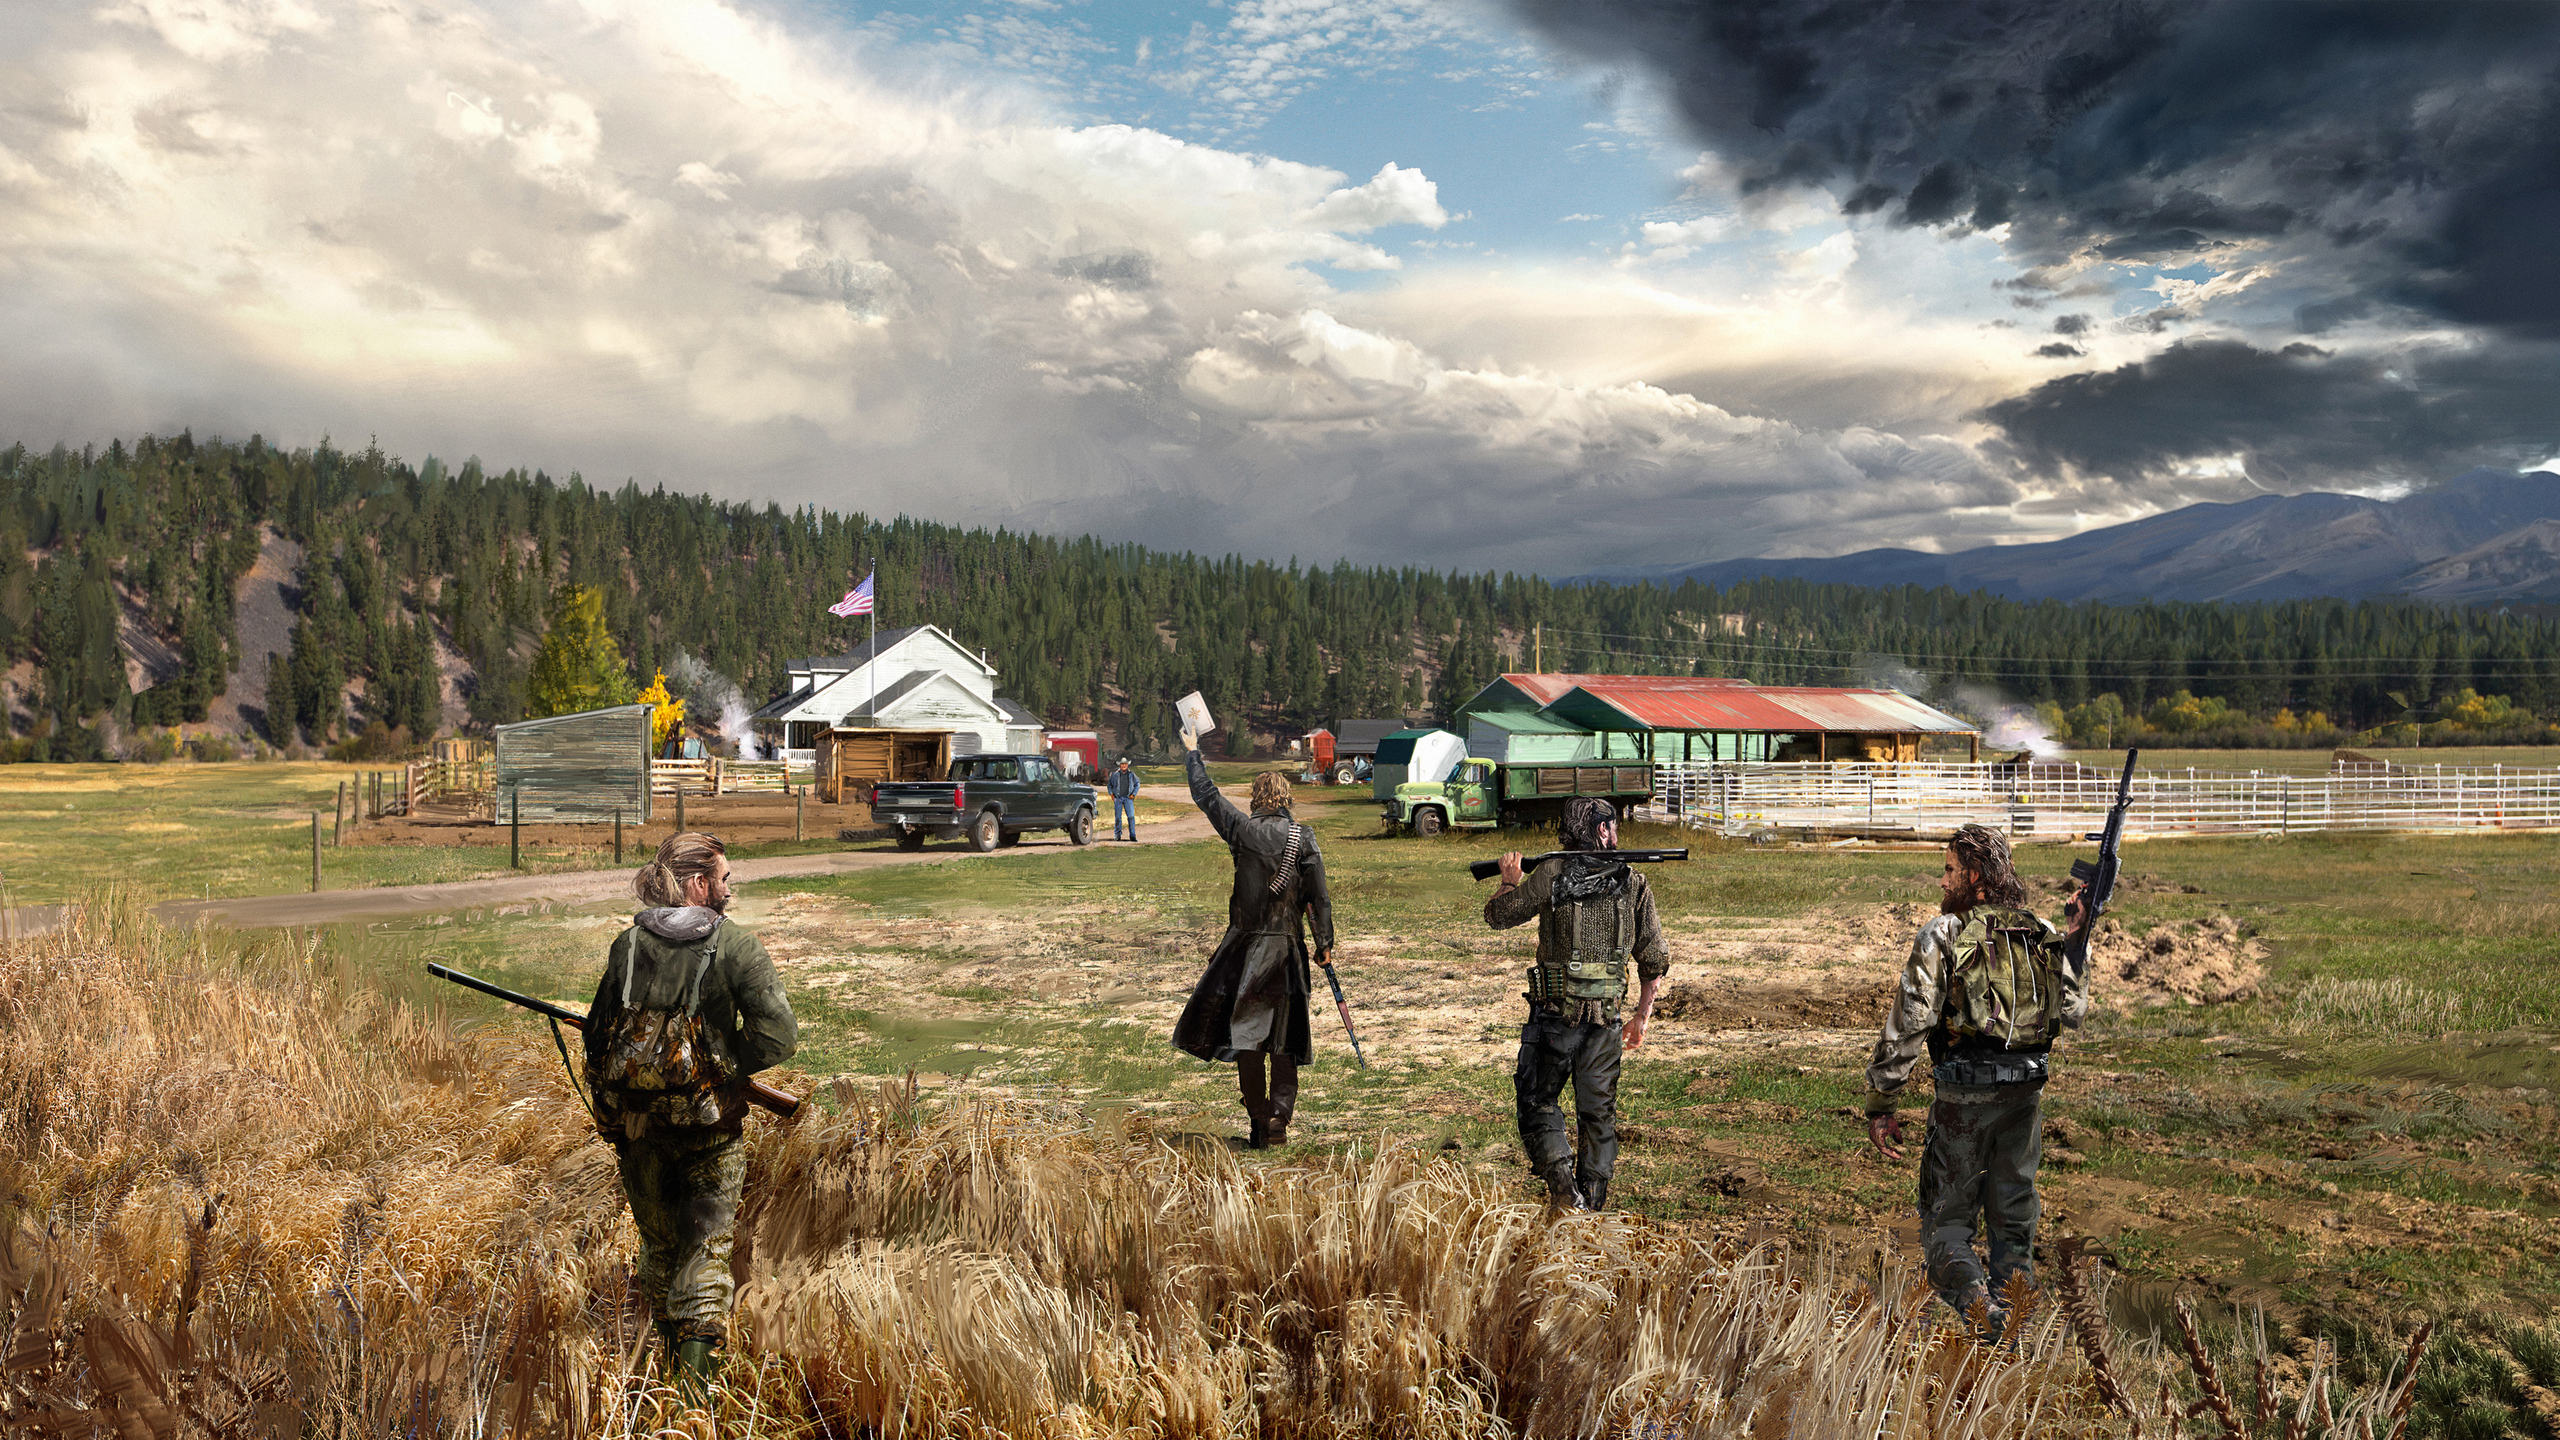 2560x1440 2018 Far Cry 5 4k 1440p Resolution Hd 4k Wallpapers